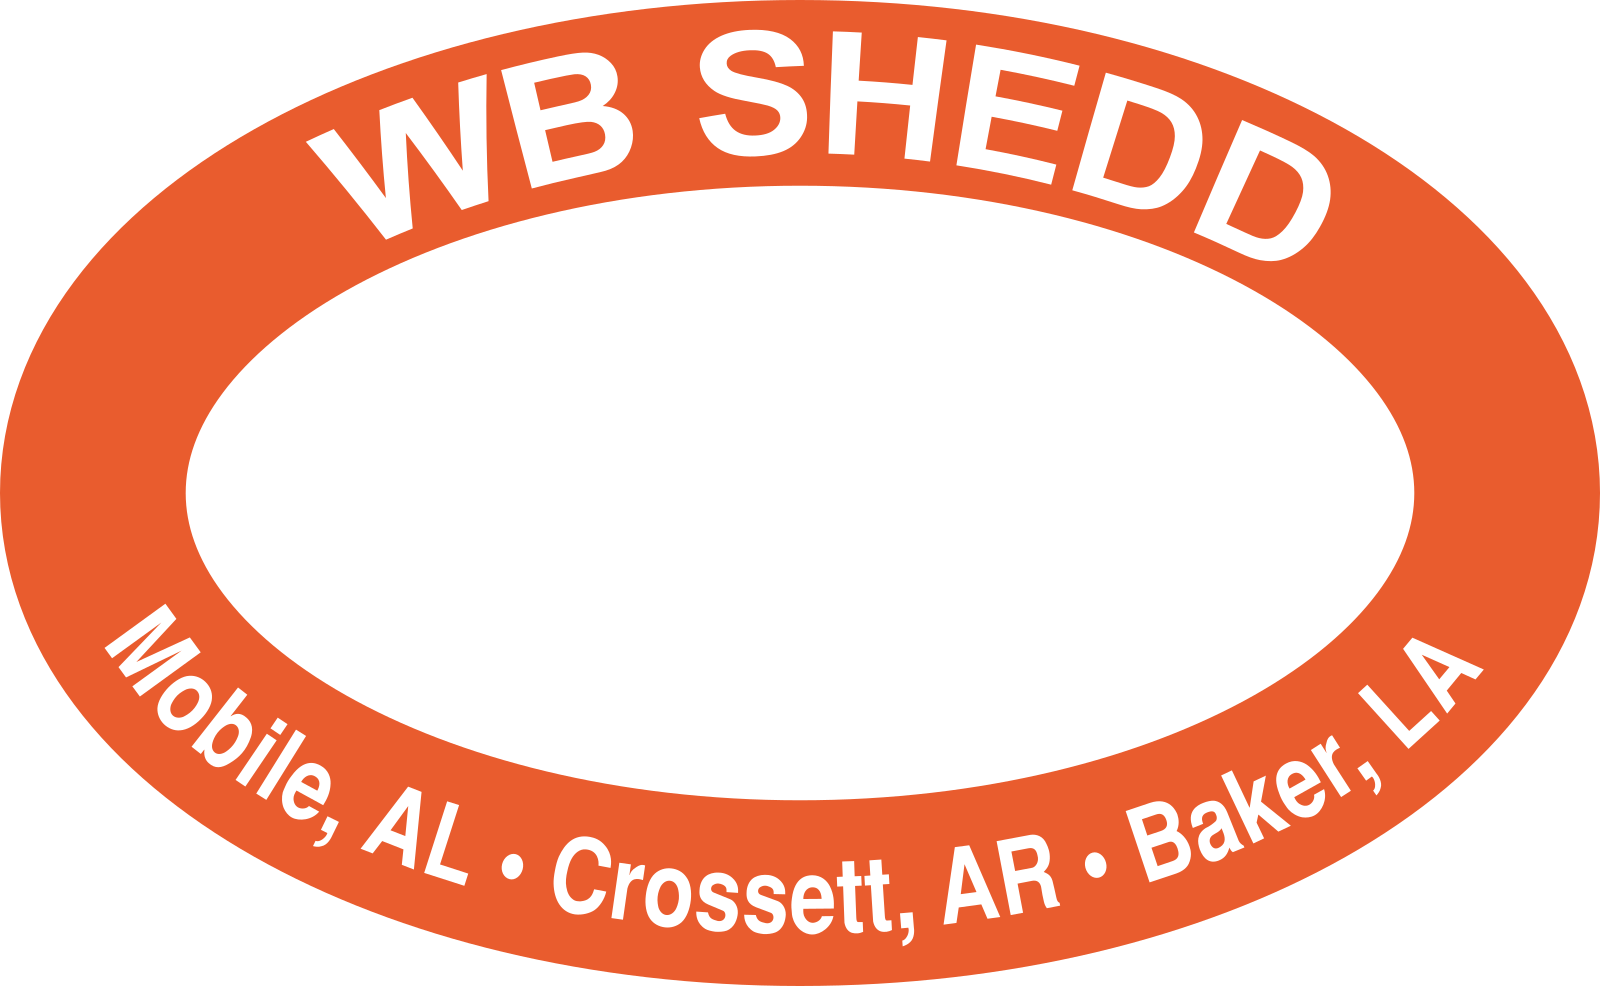 WB Shedd Industrial Services